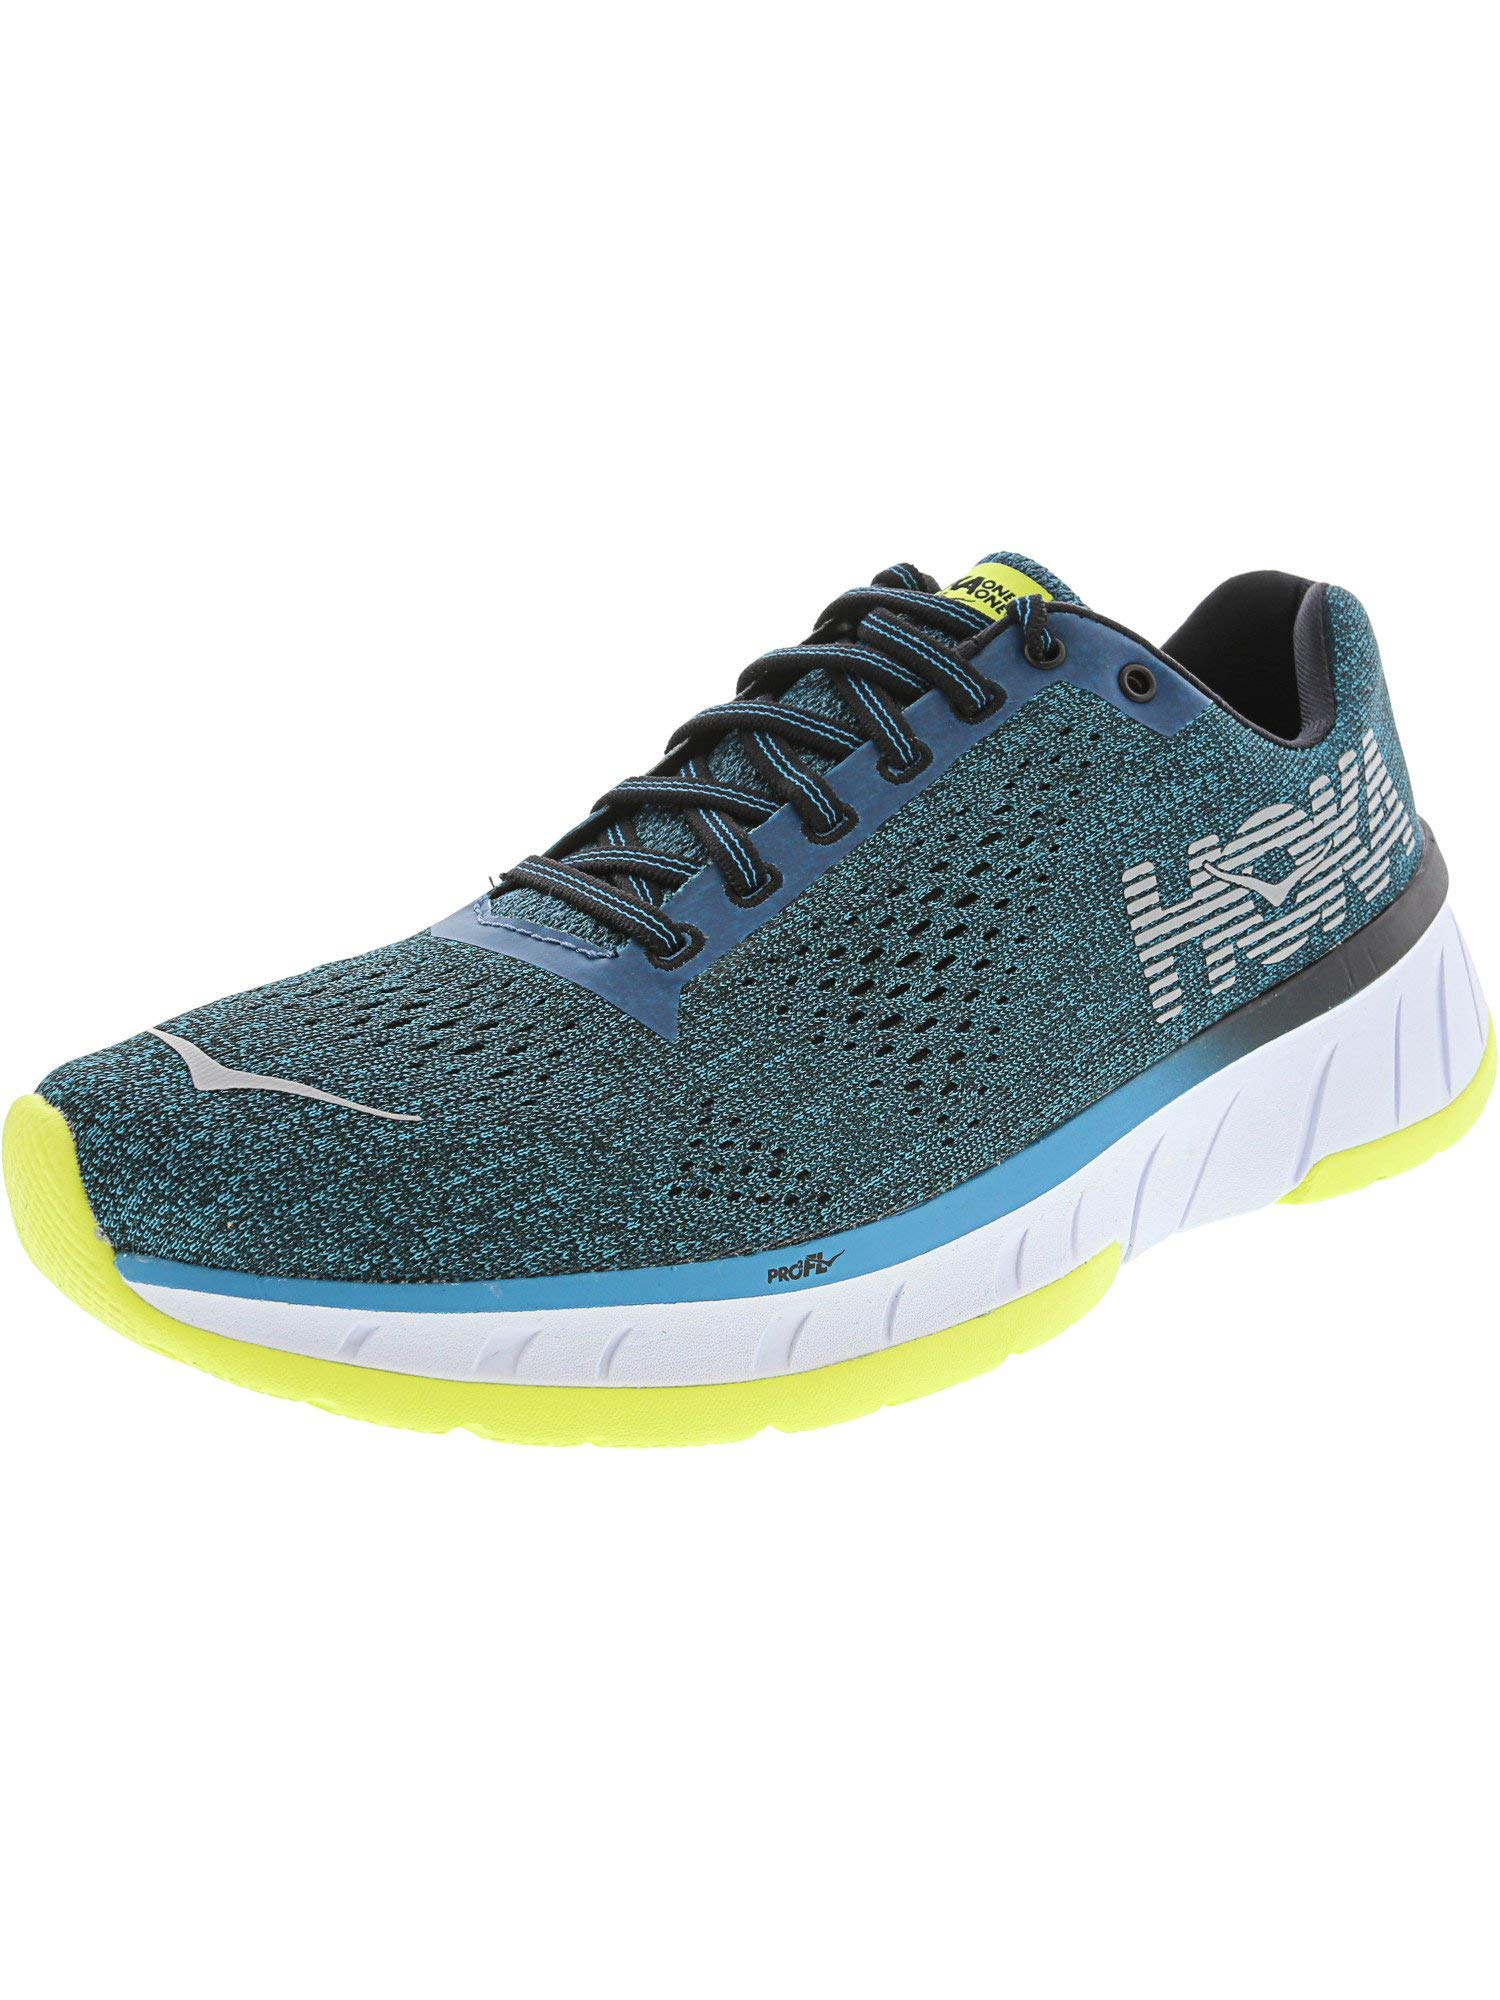 HOKA ONE ONE Mens Cavu Fabric Low Top Lace Up Running Sneaker, Blue, Size 7.0